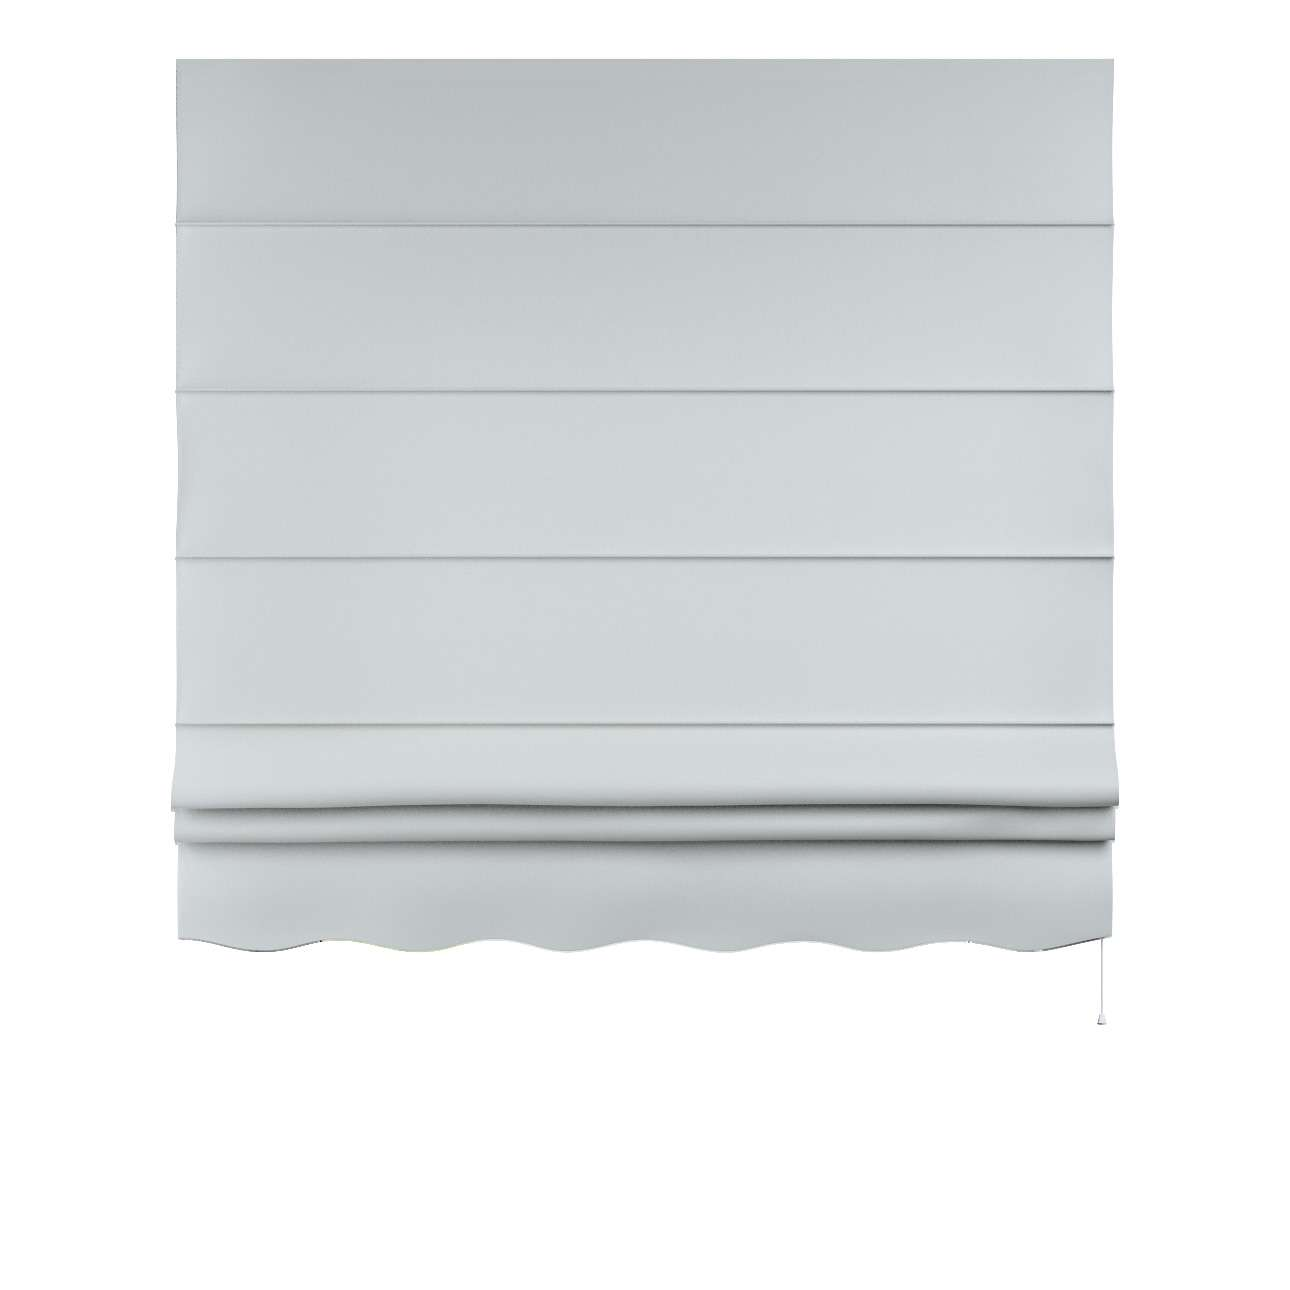 Florence roman blind  80 × 170 cm (31.5 × 67 inch) in collection Damasco, fabric: 141-77